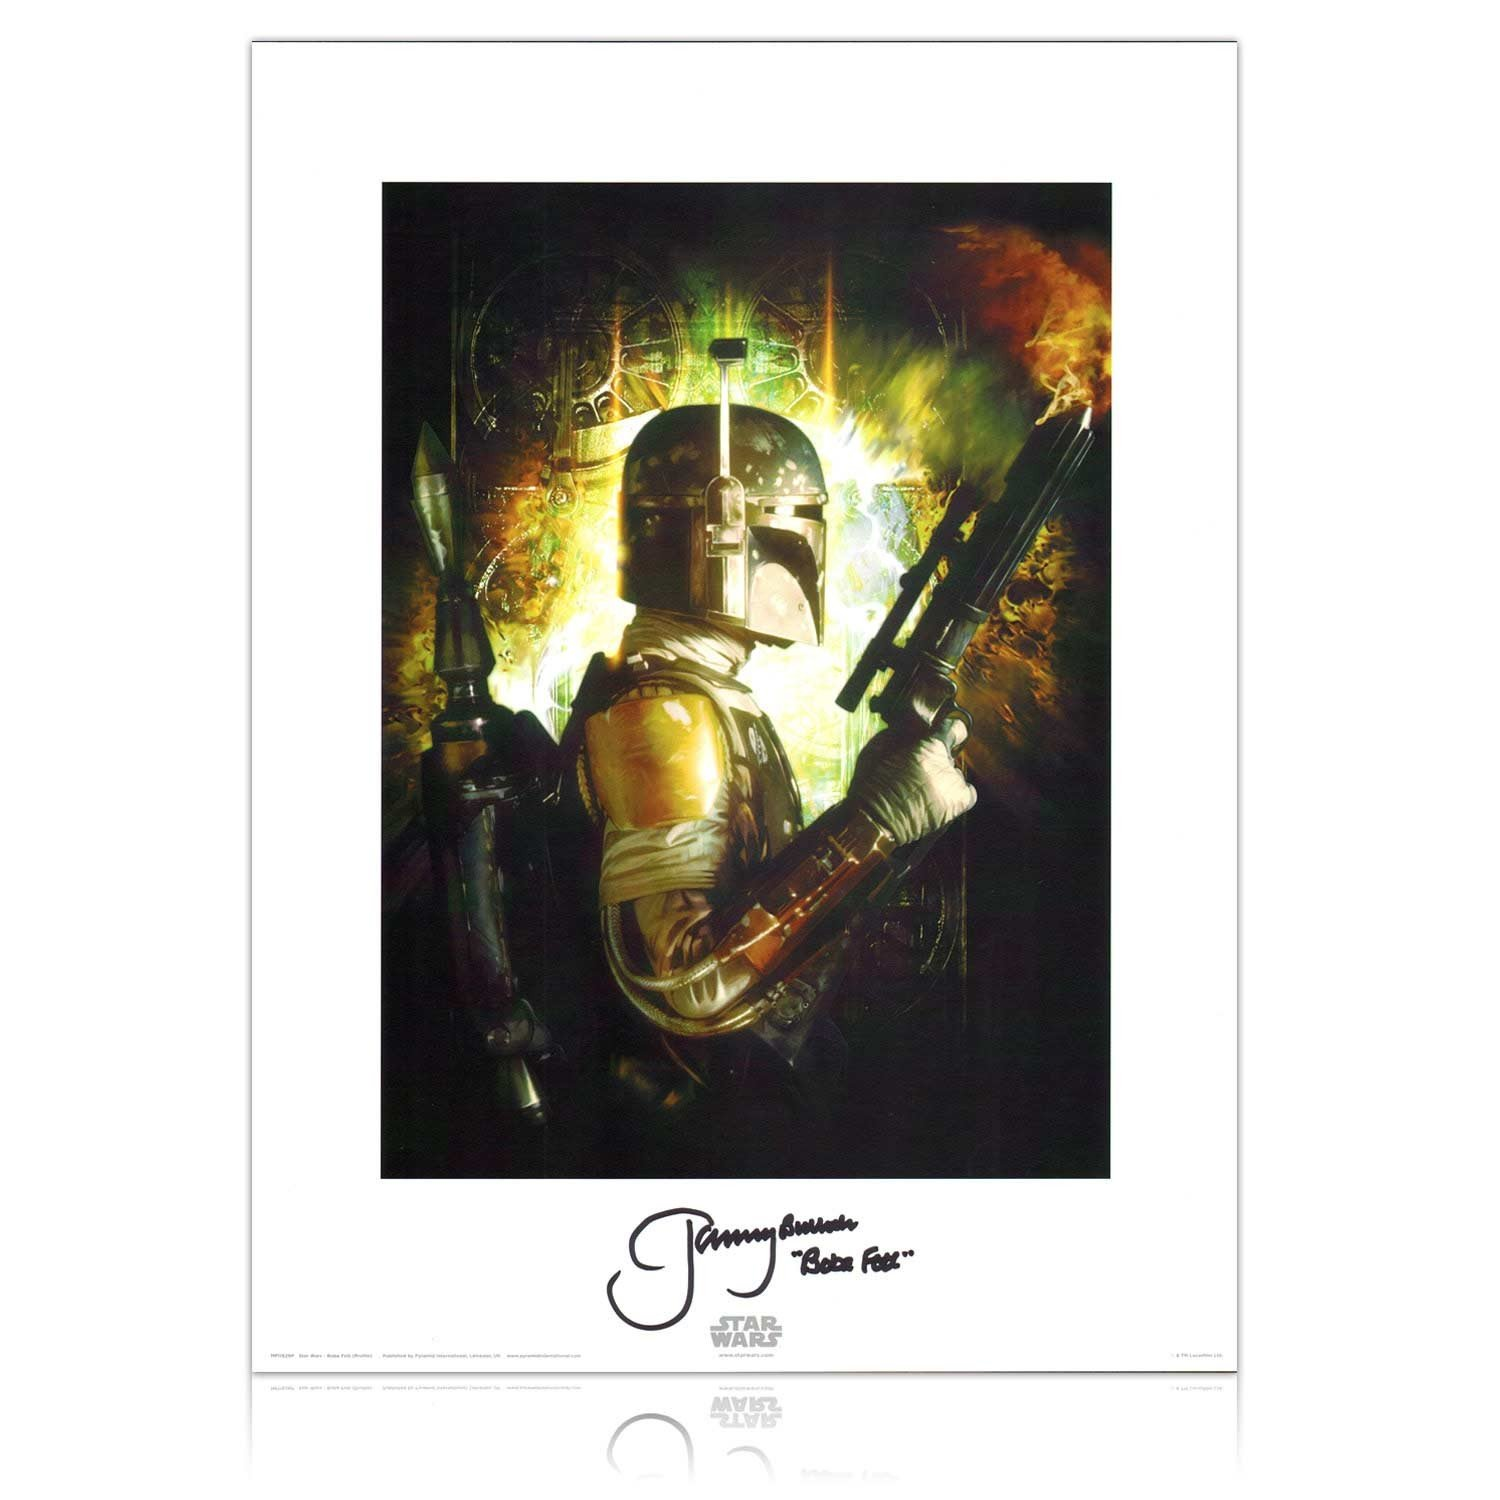 Boba Fett Signed Star Wars Bounty Hunters Poster Jeremy (Boba Fett) Exclusive Memorabilia